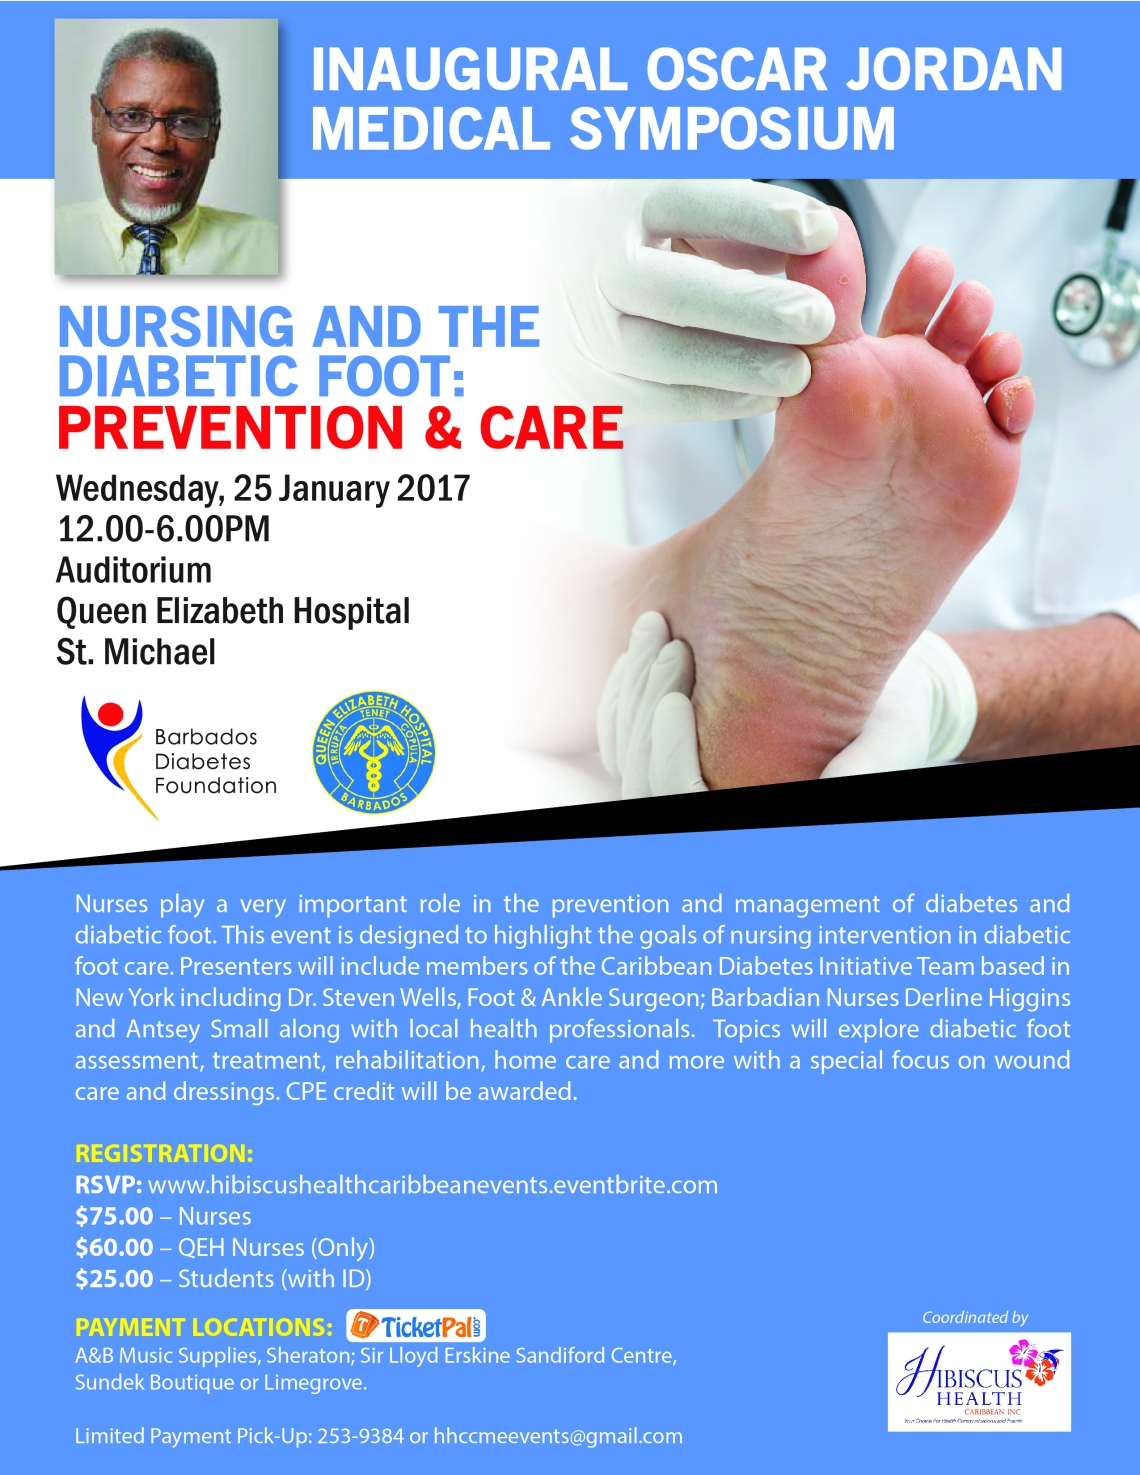 nursing-and-the-diabetic-foot-prevention-care-flyer-2-copy